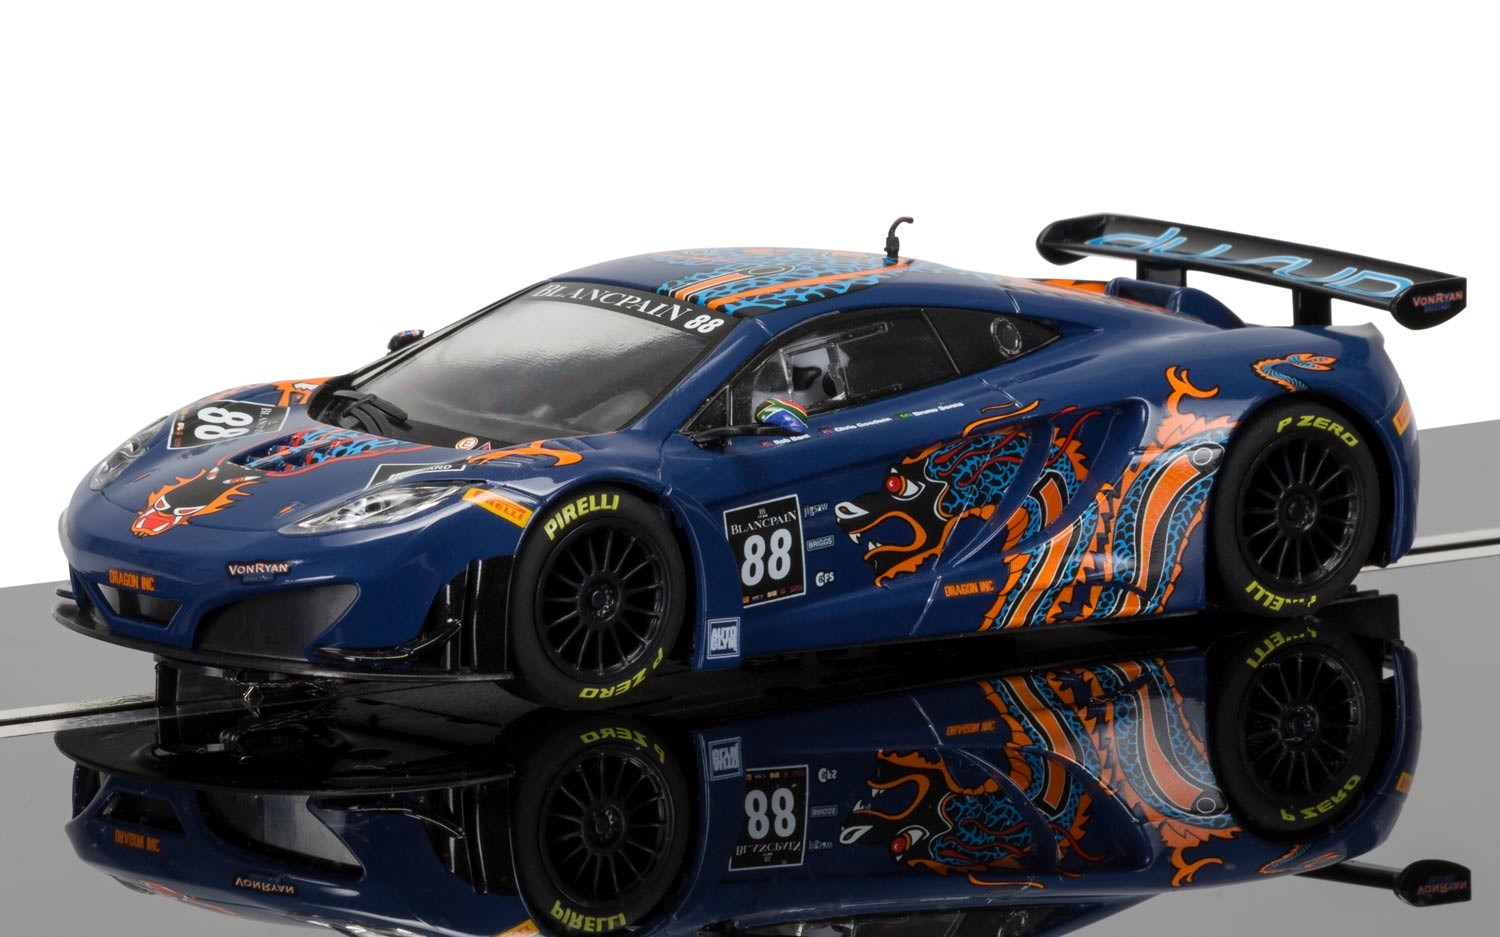 McLaren 12C GT3, Von Ryan Racing #88 1/32 Slot Car